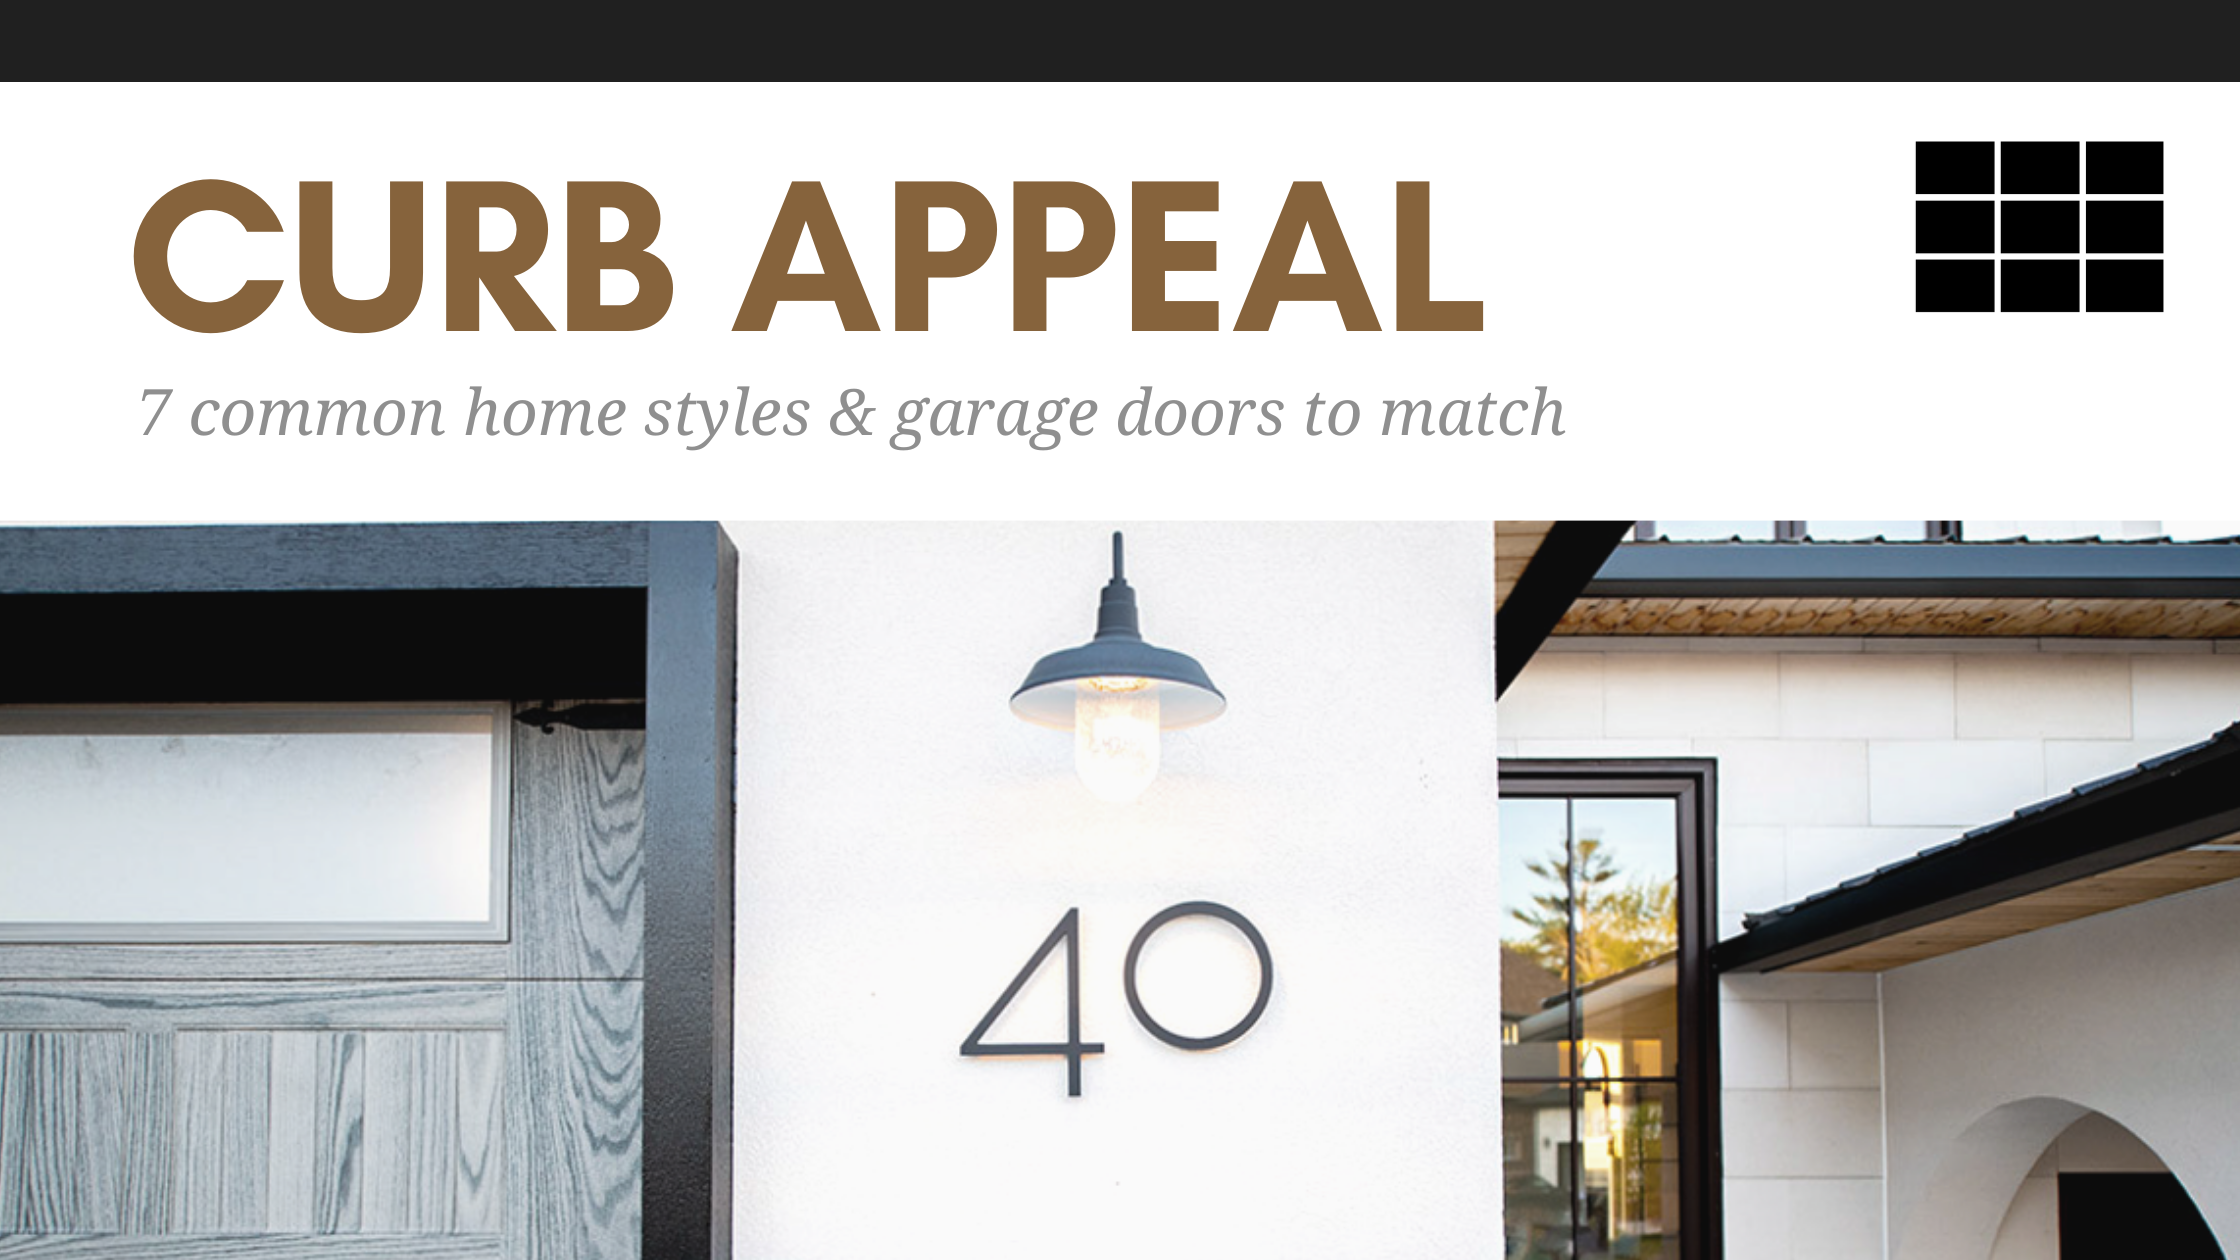 Curb appeal: 7 common home styles and garage doors to match